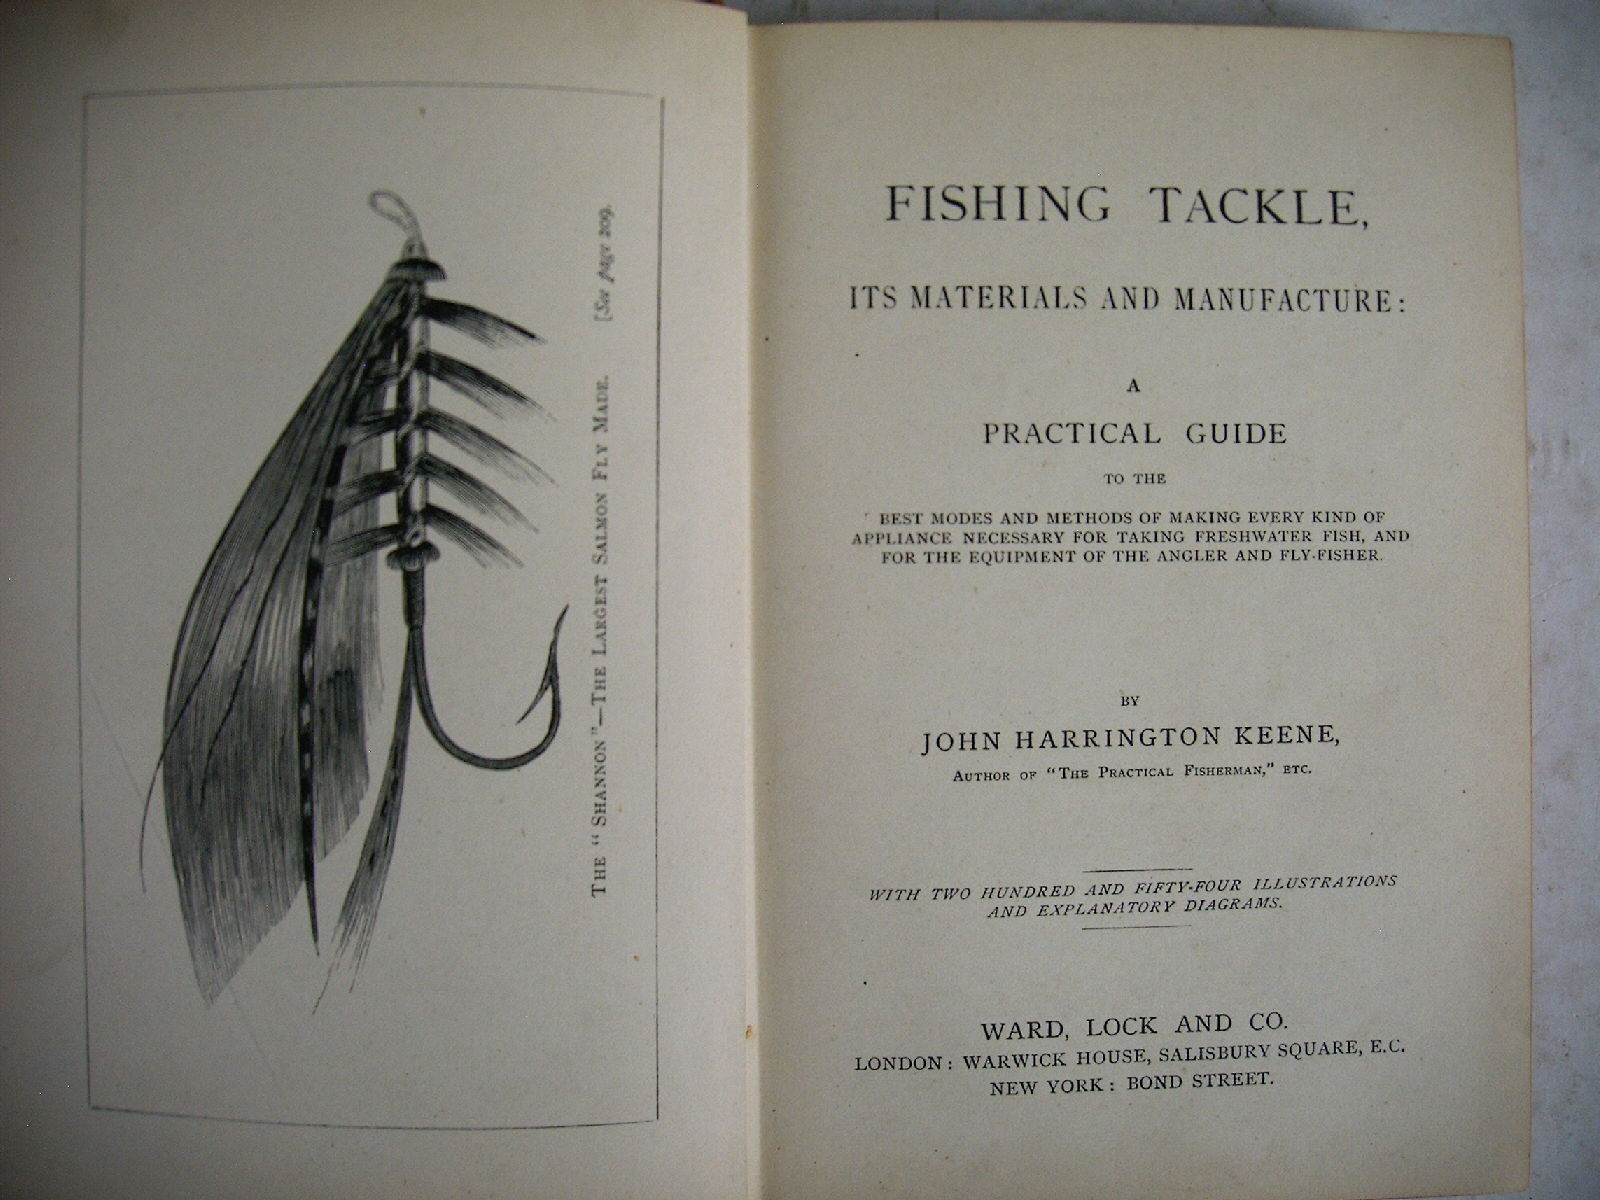 PECHE A LA MOUCHE LANCER poisson FISHING TACKLE J.H. Keene 1886